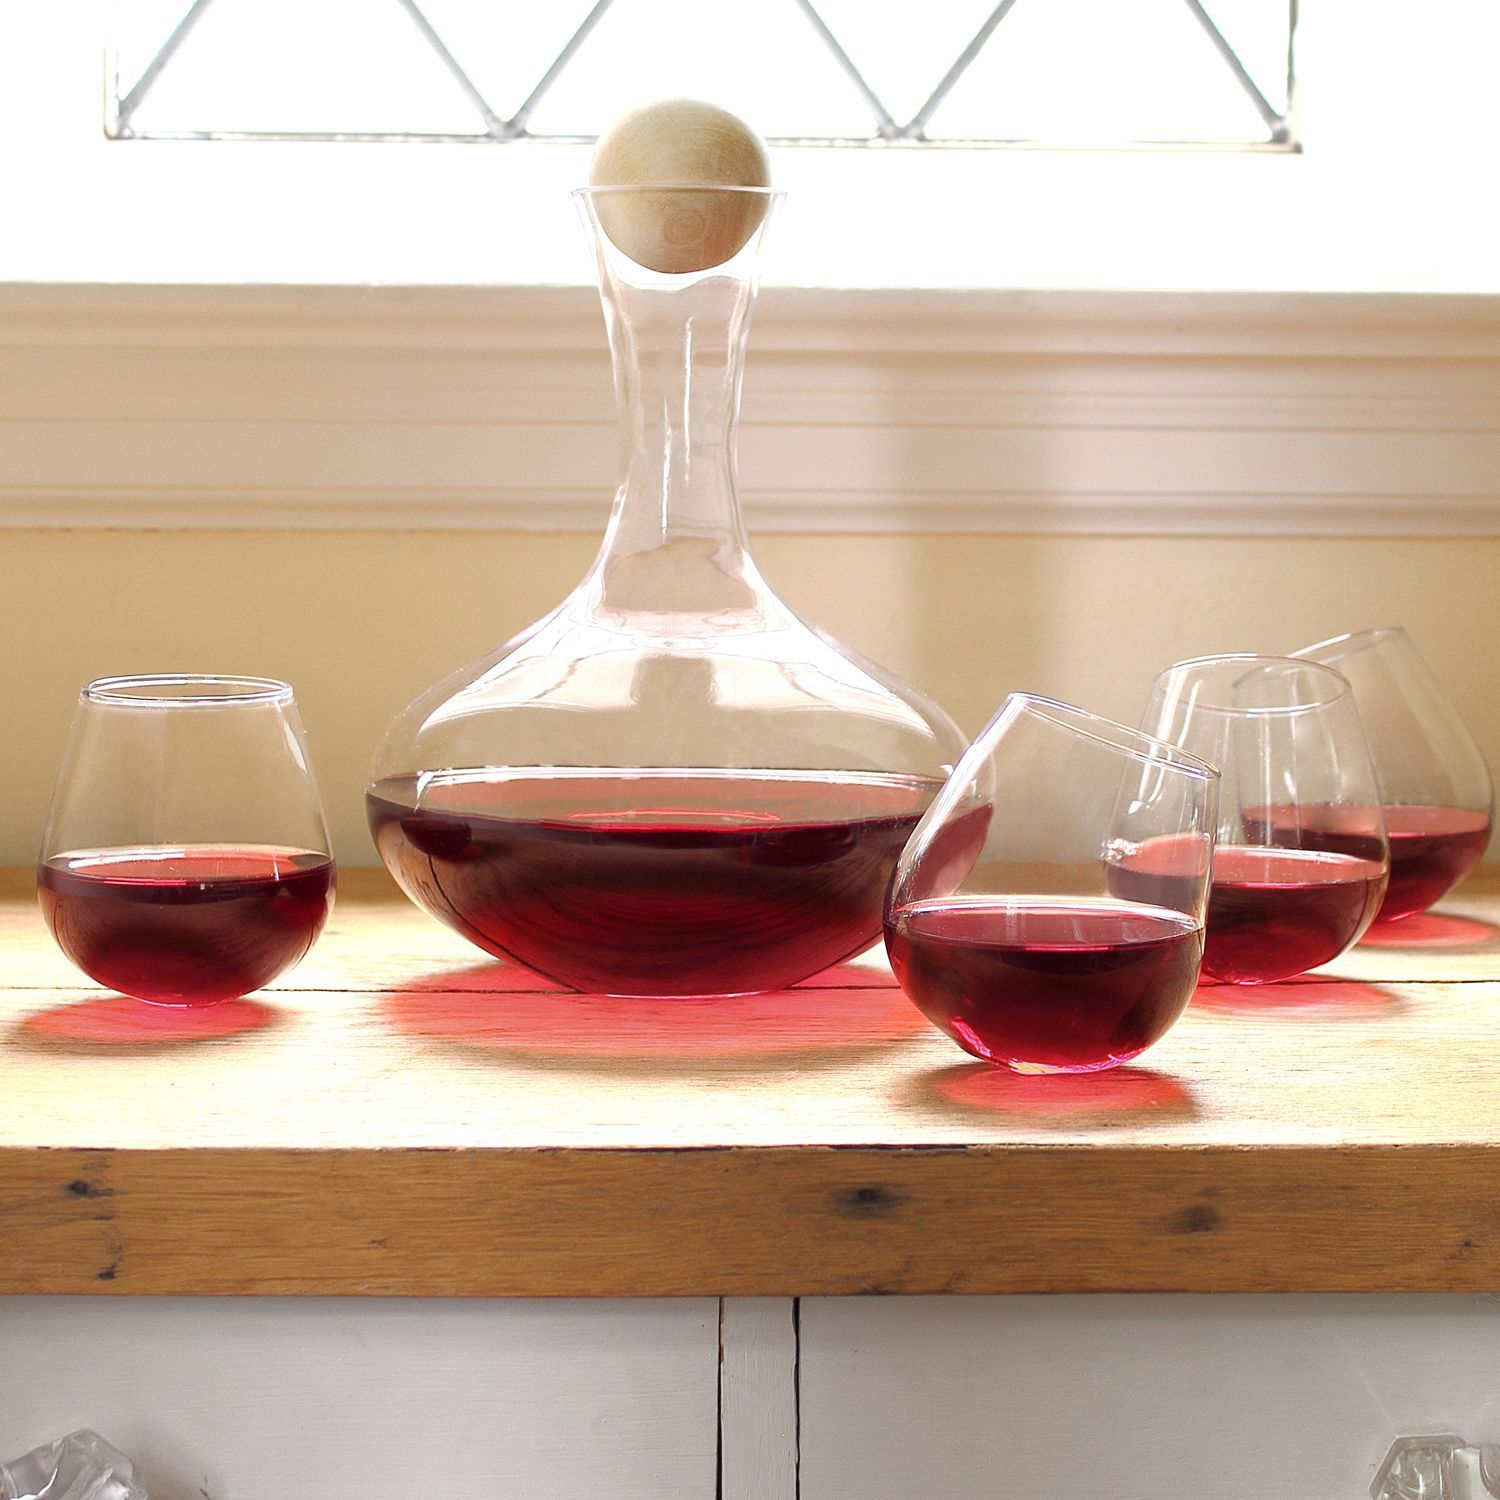 5 Piece Wine Decanter Tipsy Tasters Set Personalized Wine Decanter Wine Decanter Set Wine Glass Set